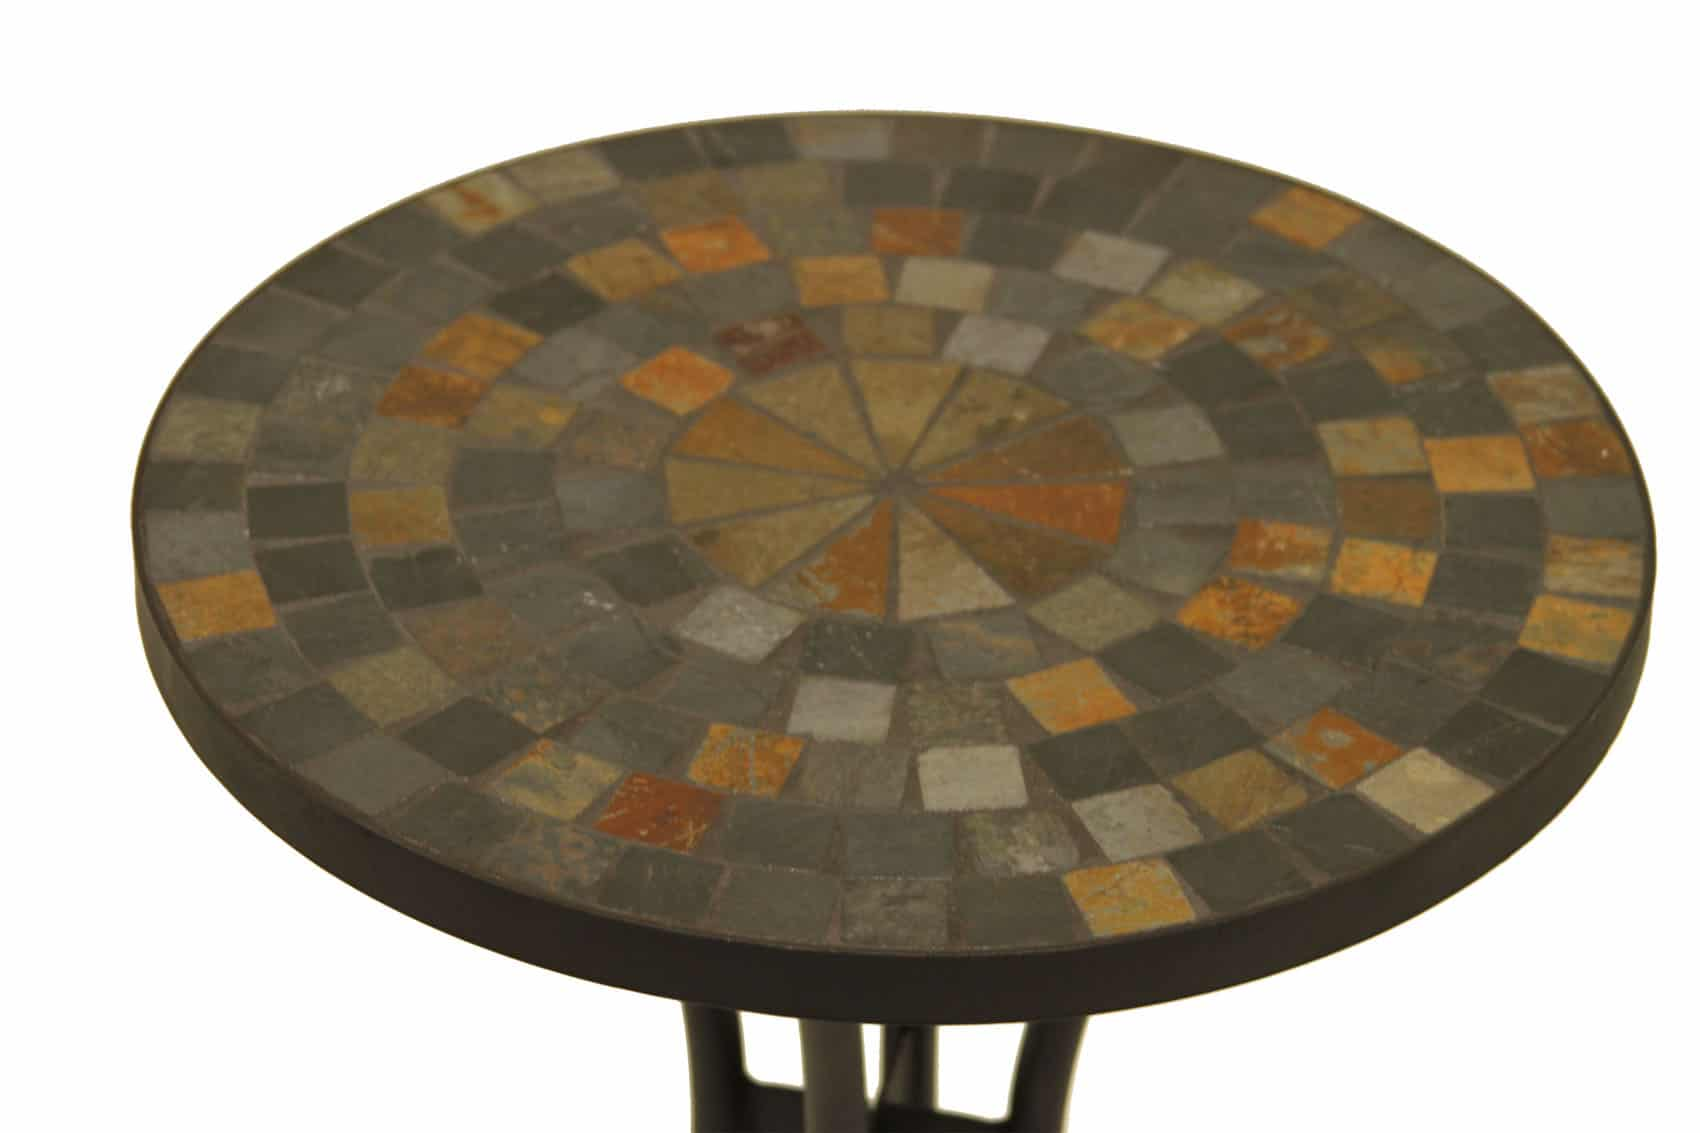 slate mosaic accent table for decks patios and gardens cobble stone top only indoor circular entry glass end tables ikea unfinished furniture blue runner small corner hallway